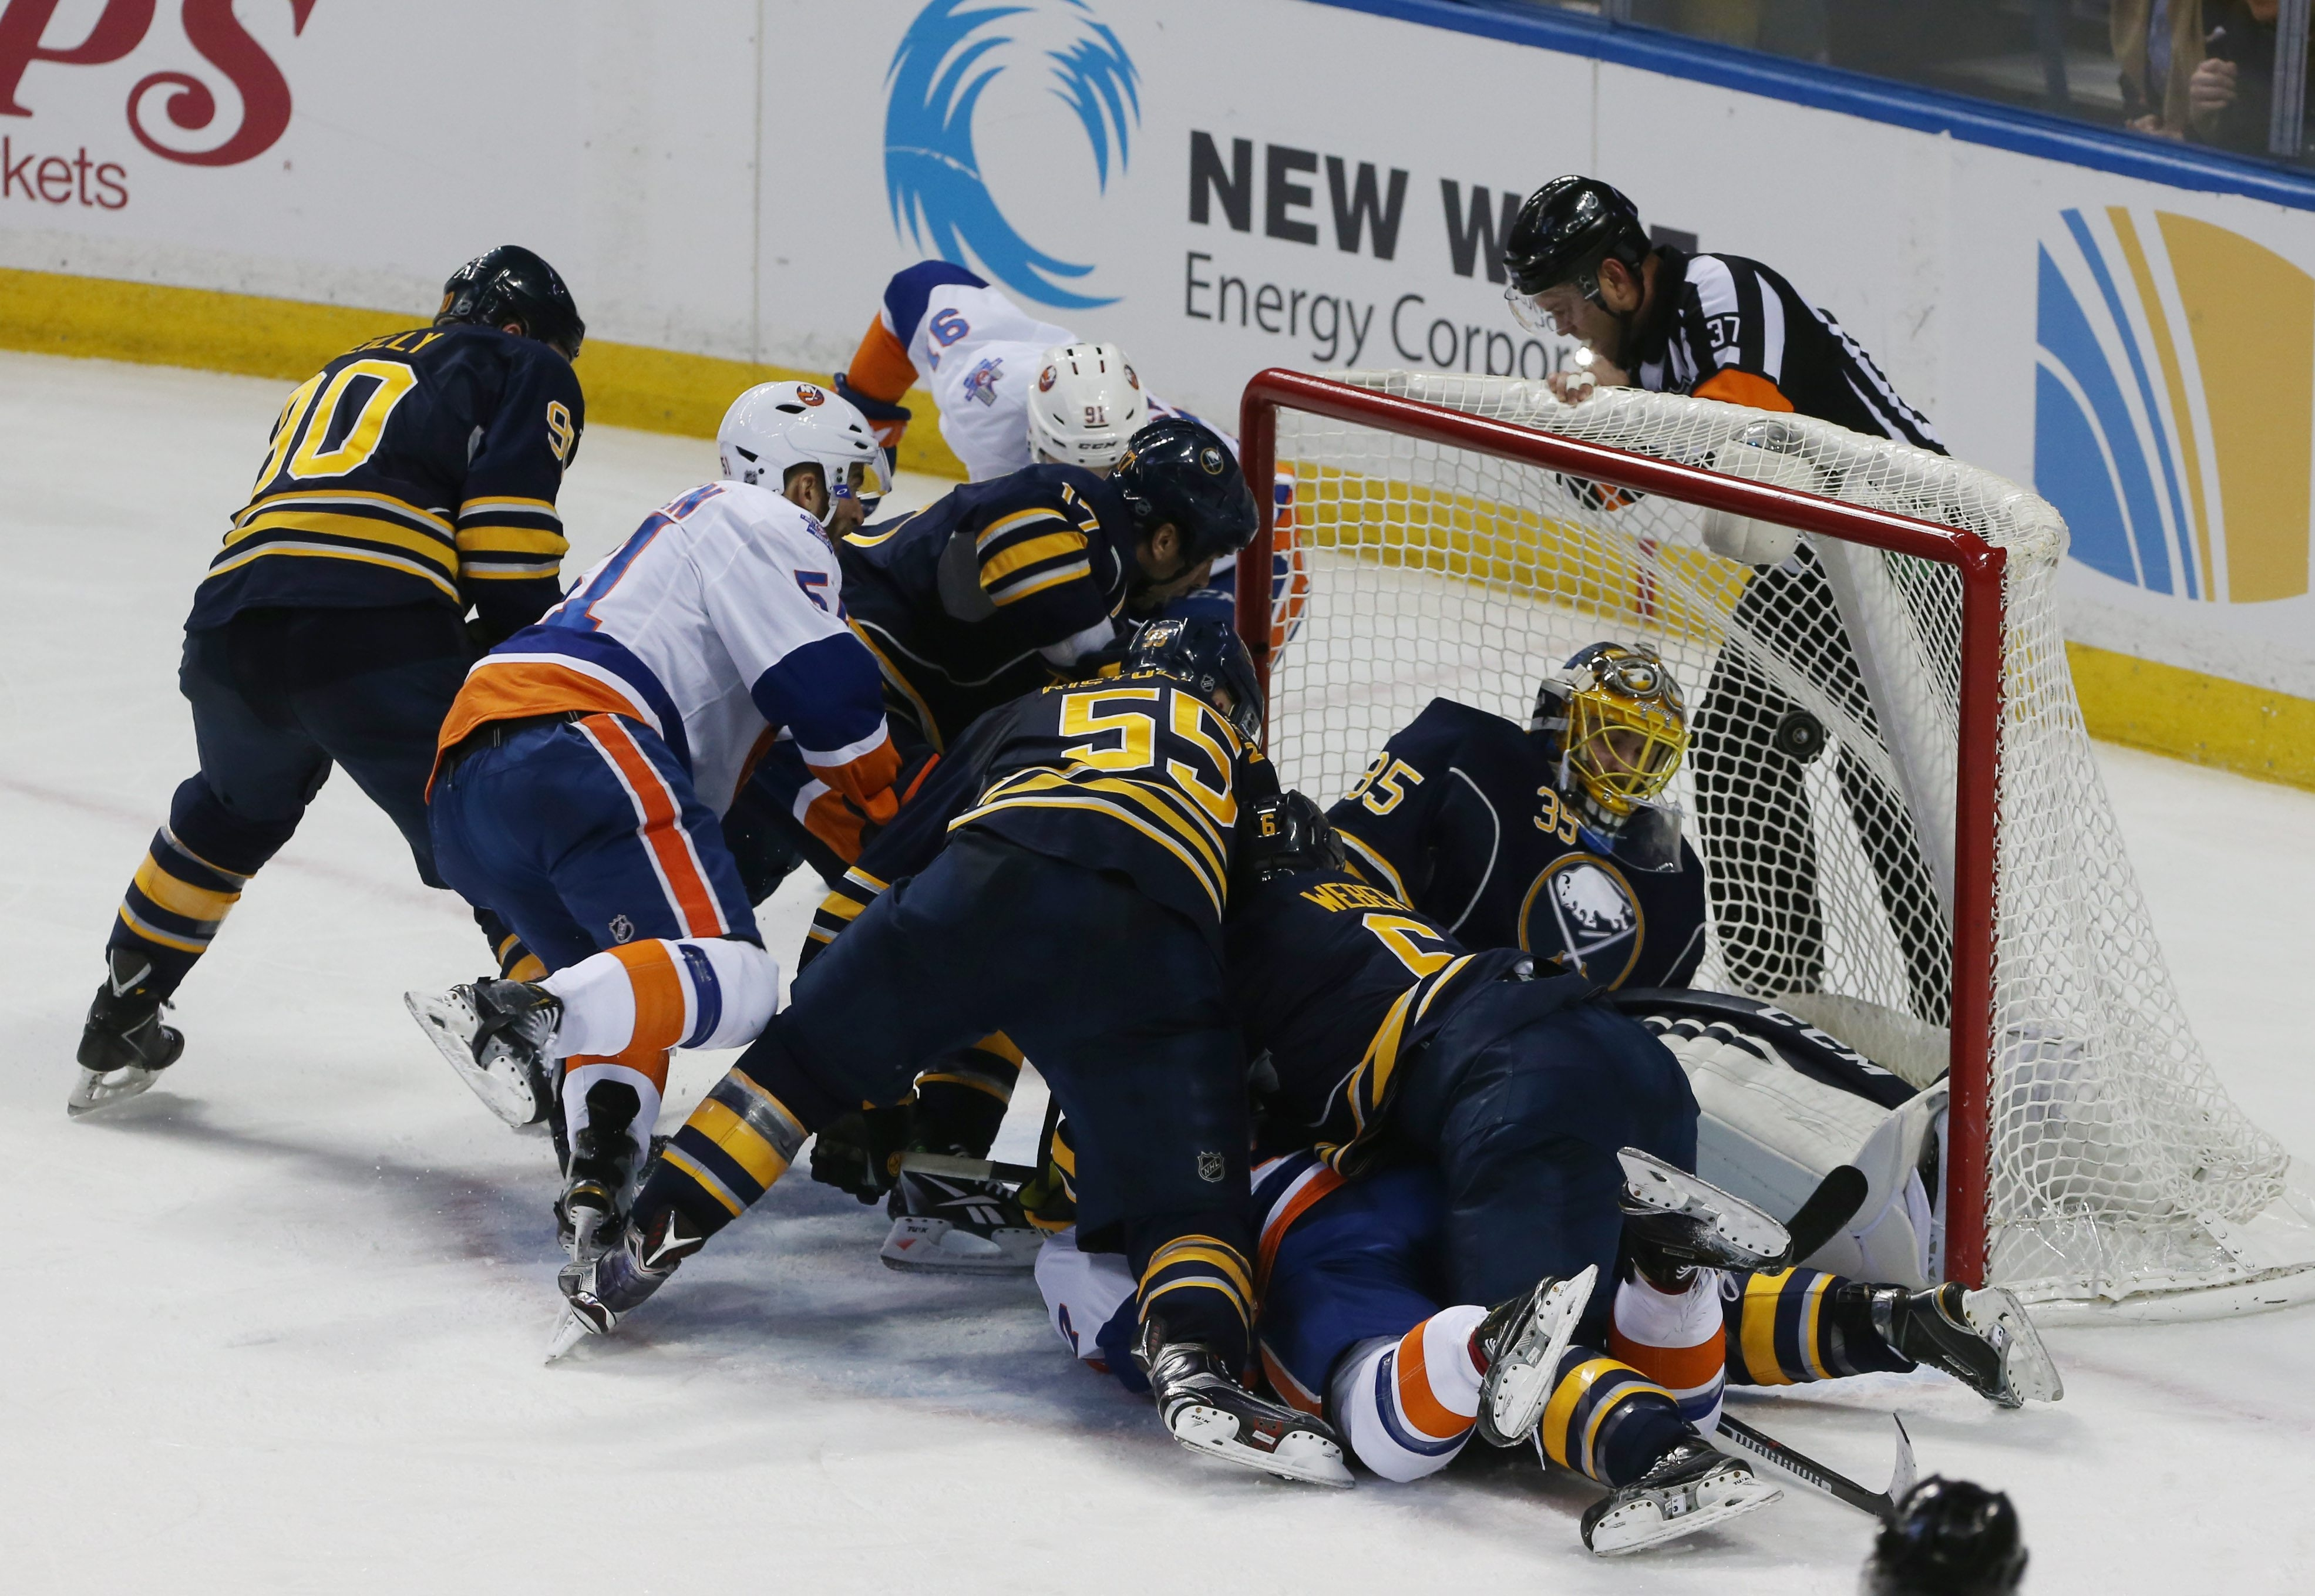 Frans Nielsen, left, scores the Islanders' first goal during a goal-mouth scramble in the second period against the Sabres' Linus Ullmark.